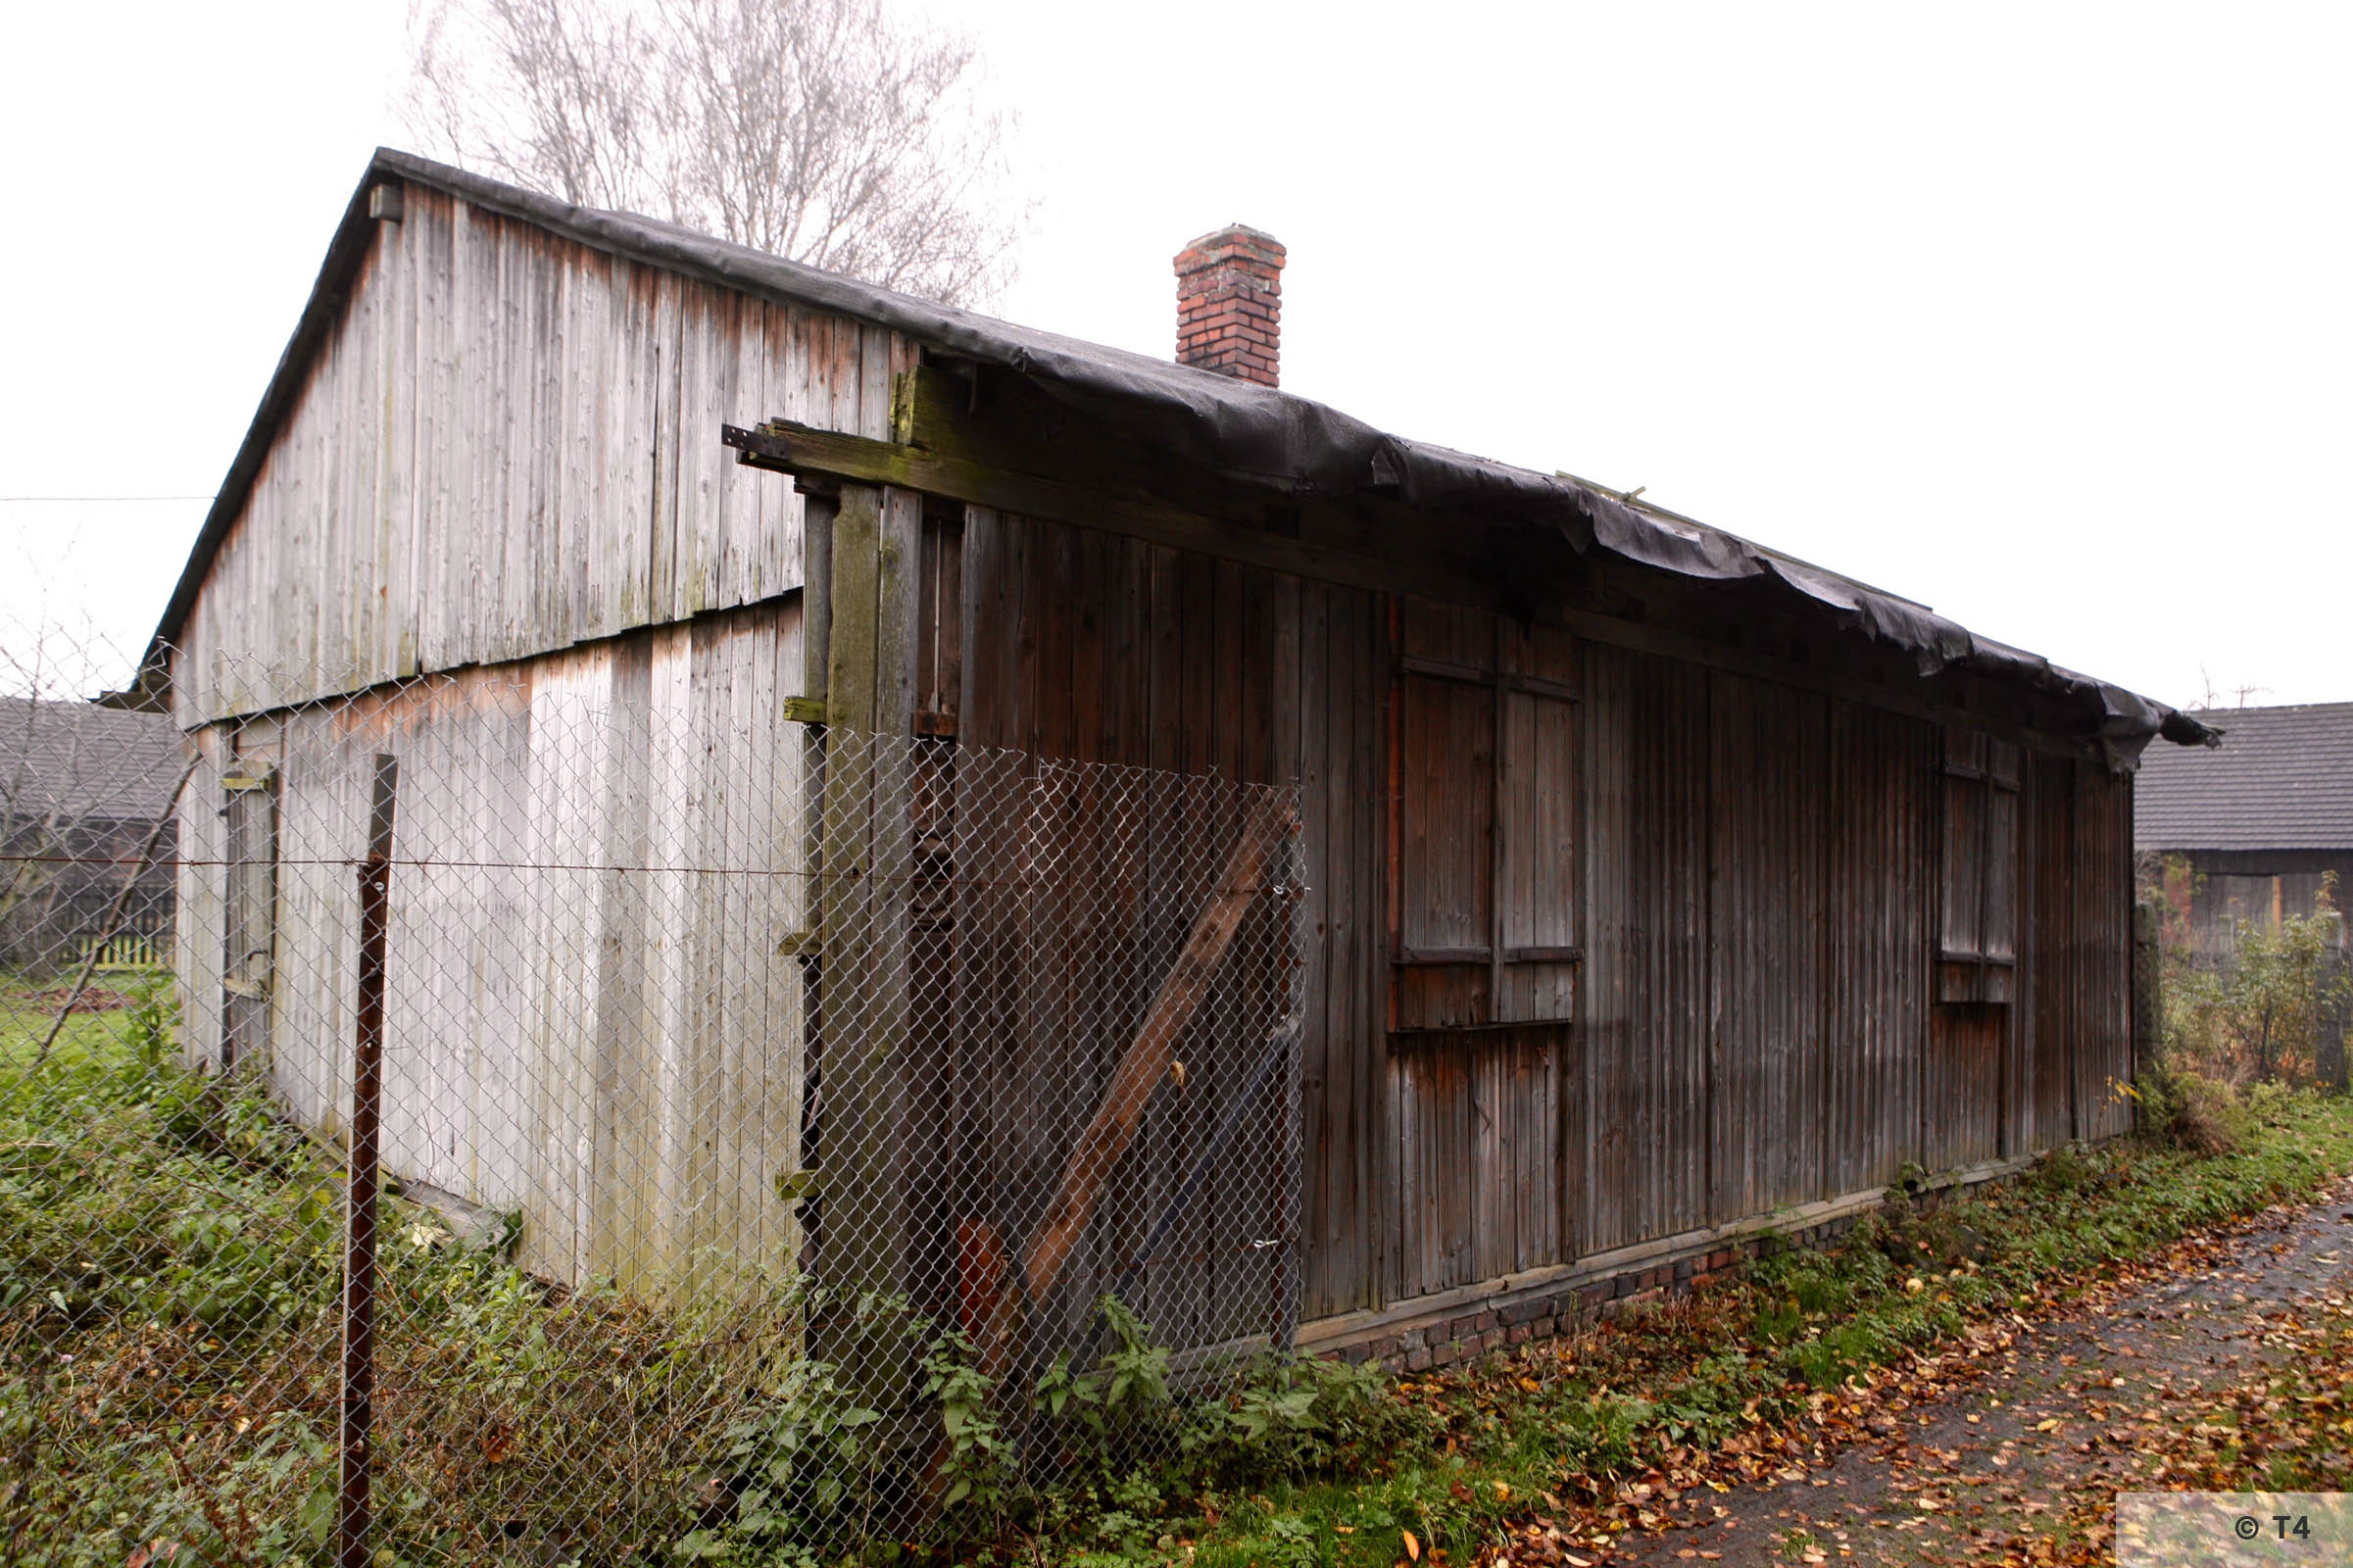 Barrack in the area of the former sub camp. 2008 T4 3221